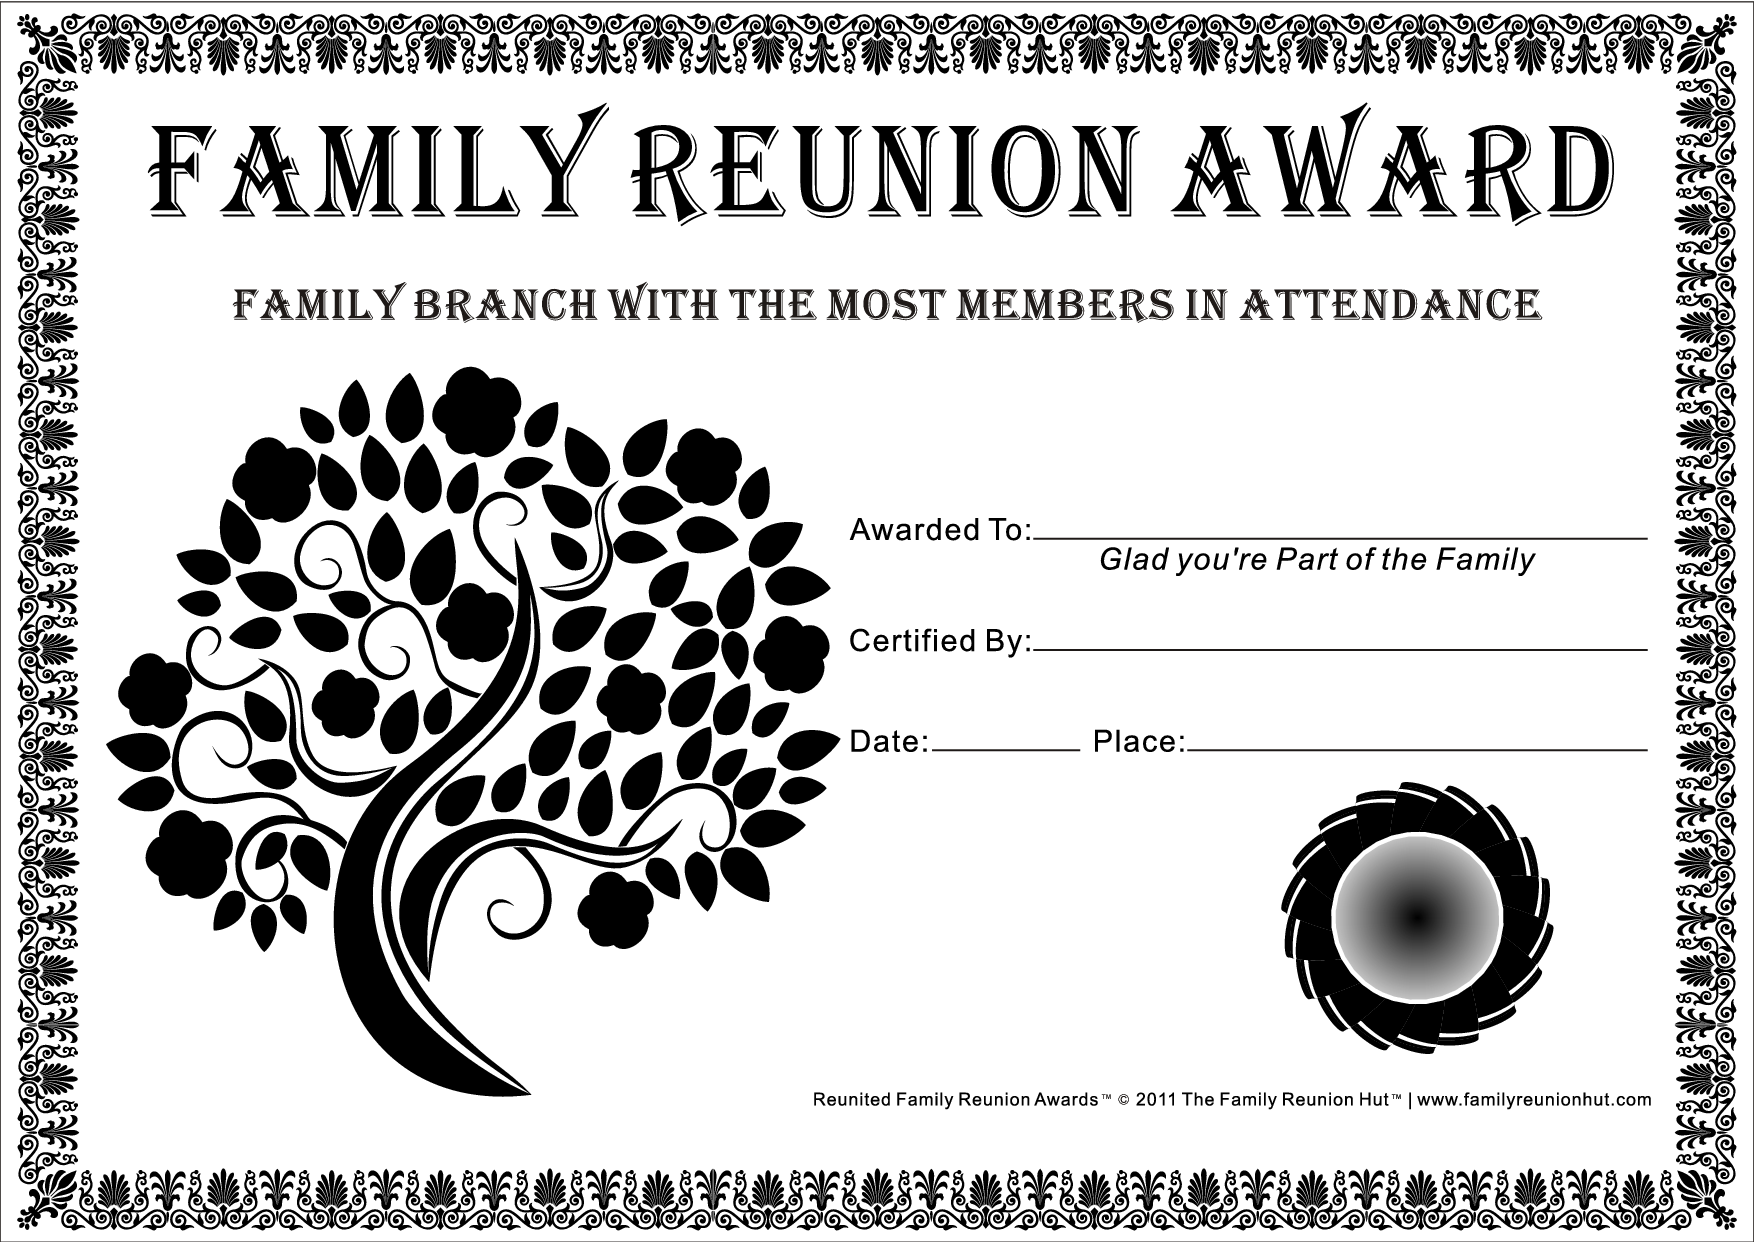 photograph about Free Printable Family Reunion Certificates named Picture final result for household reunion pics Loved ones Reunion